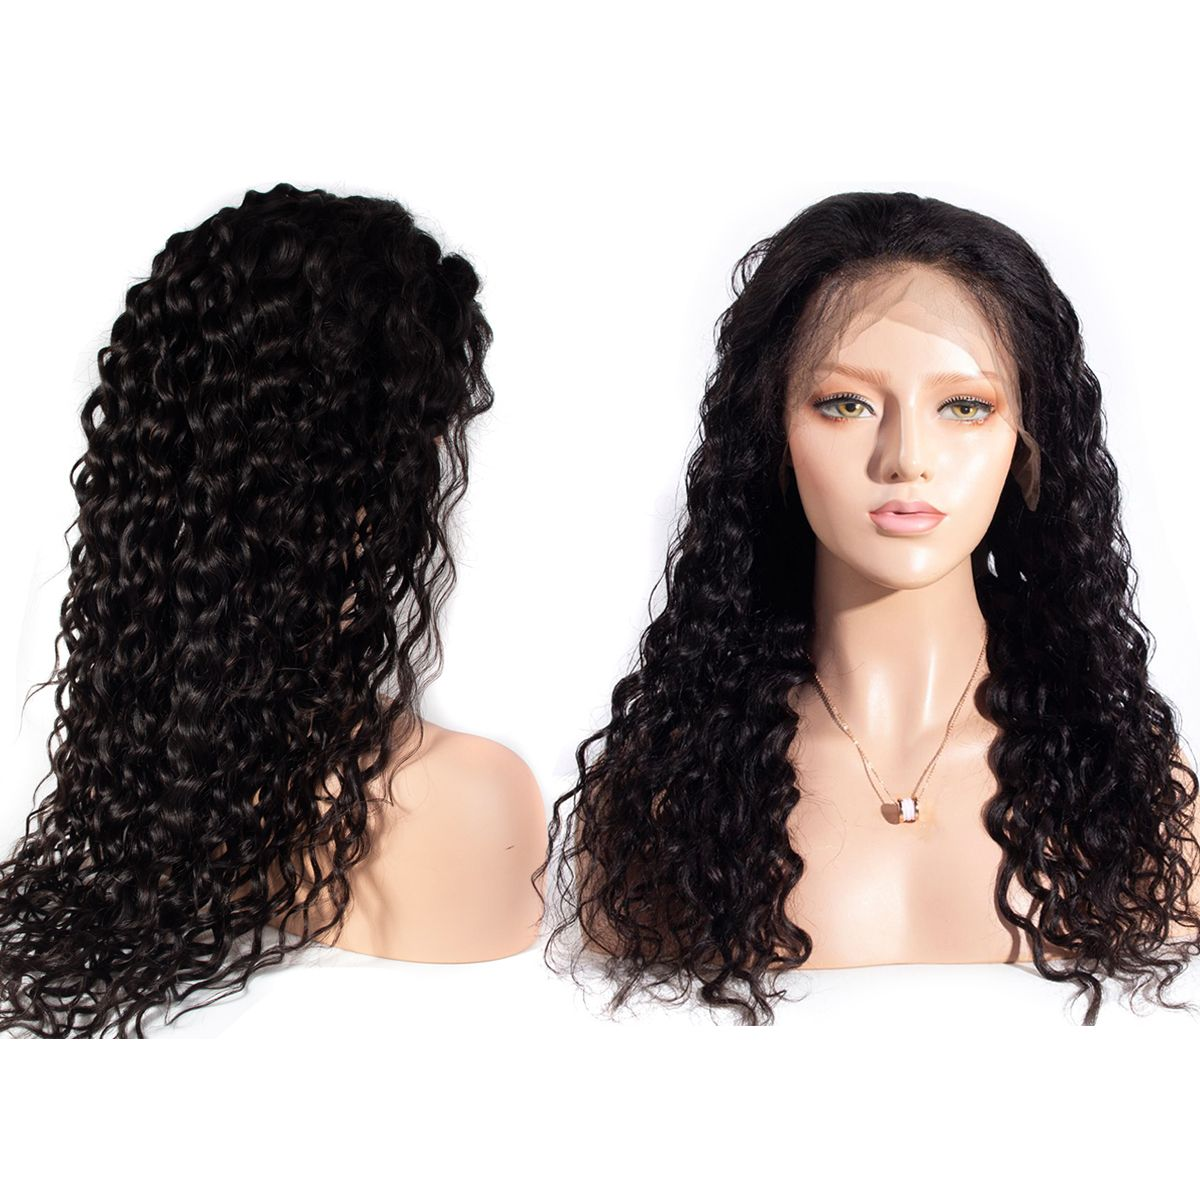 Water-wave 13x4-wig